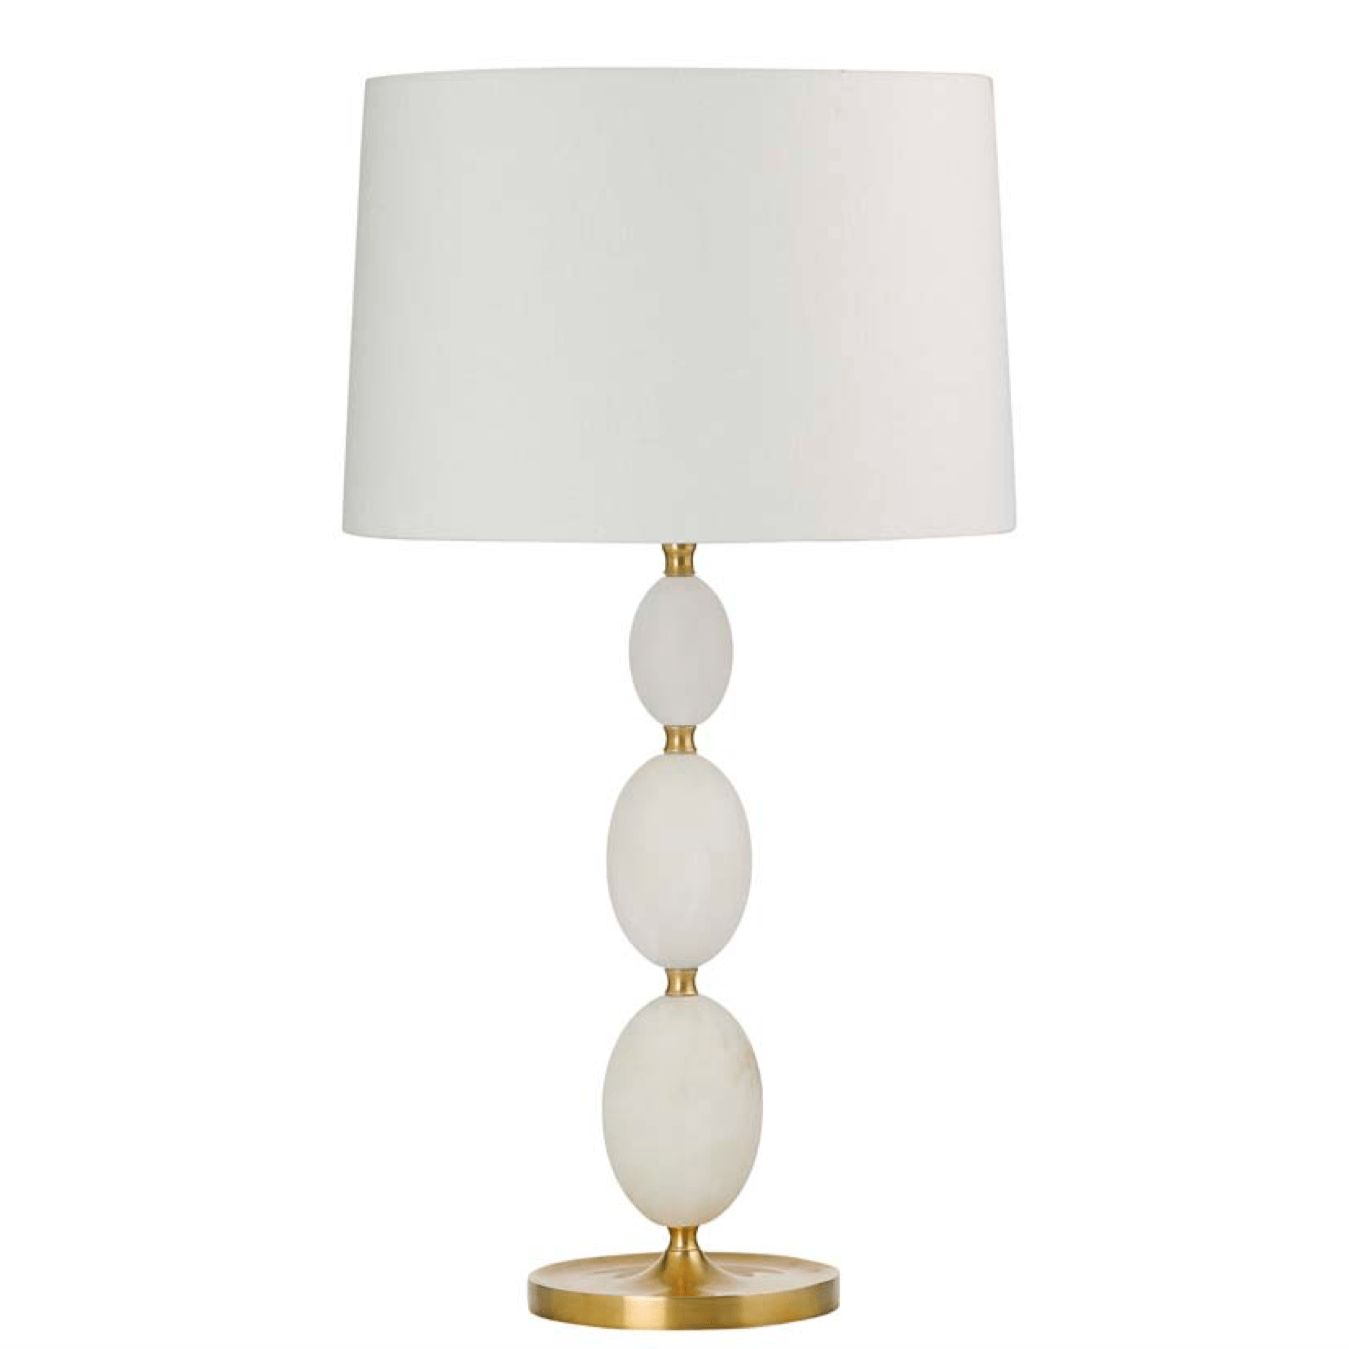 Brass & Alabaster Bobble Table Lamp lighting shops lighting stores LED lights  lighting designer